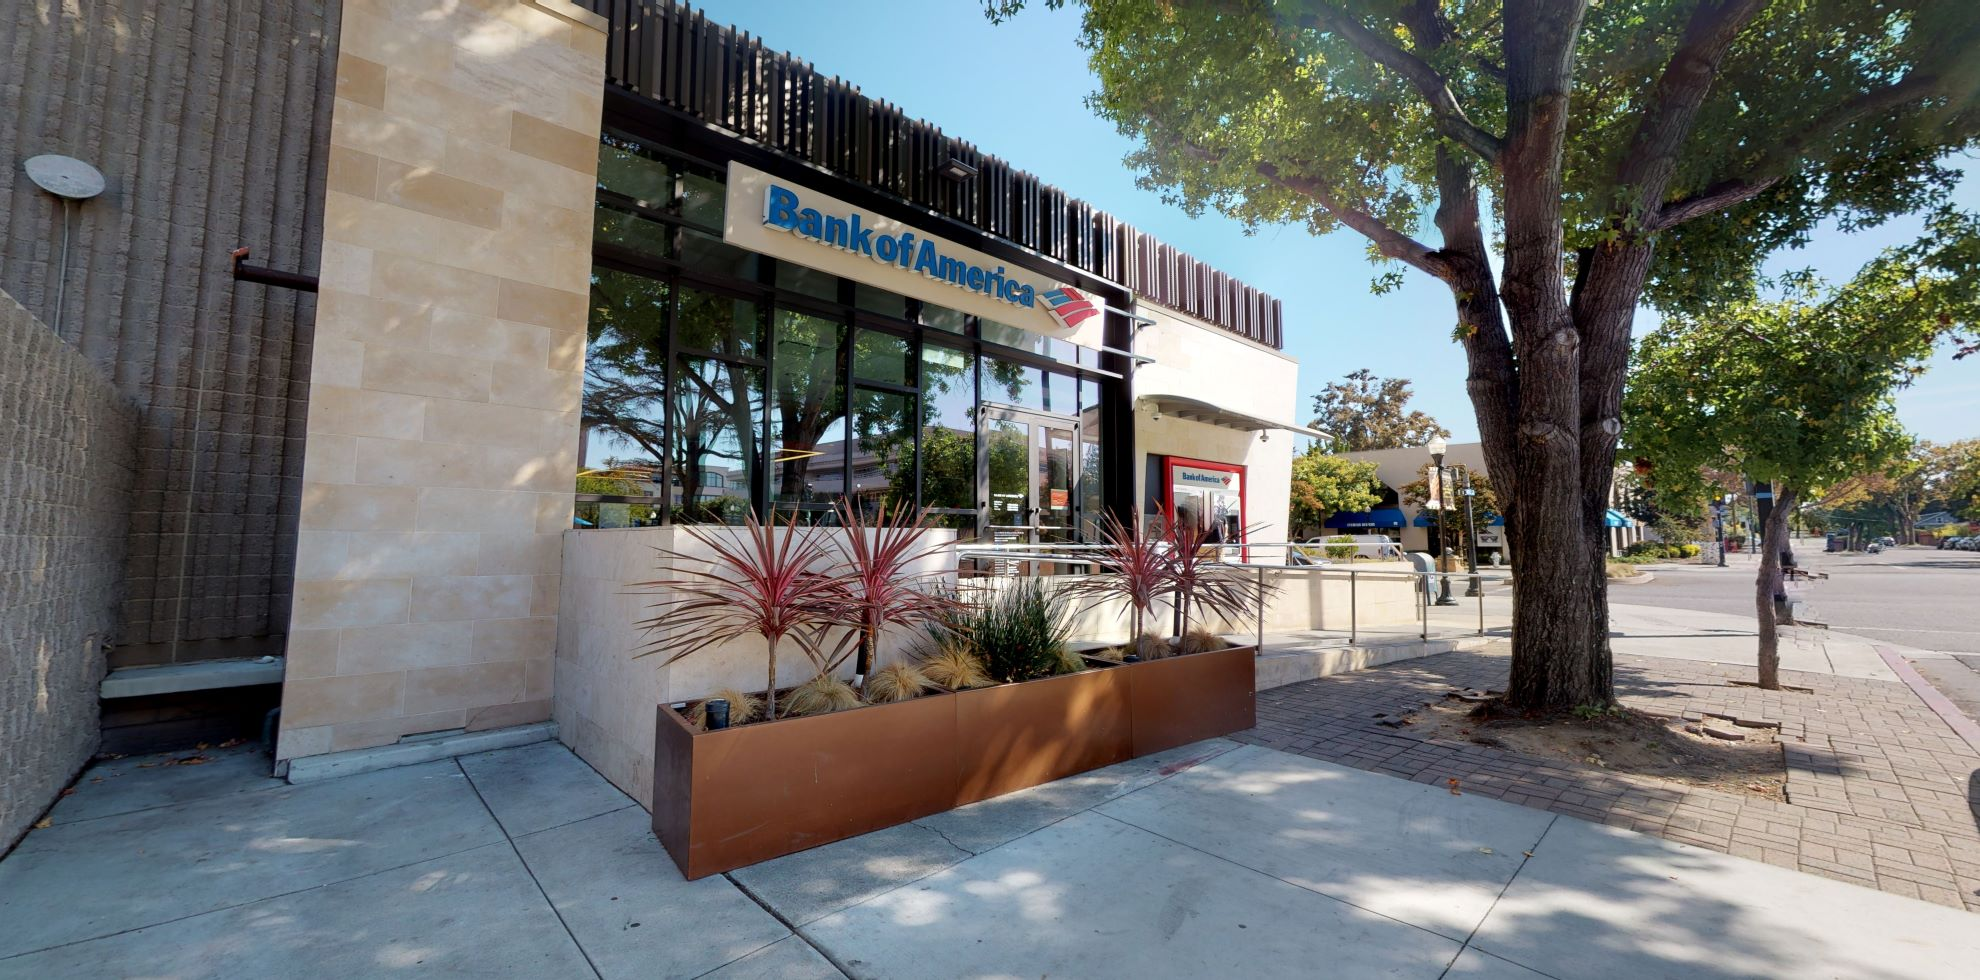 Bank of America financial center with walk-up ATM | 444 Castro St, Mountain View, CA 94041